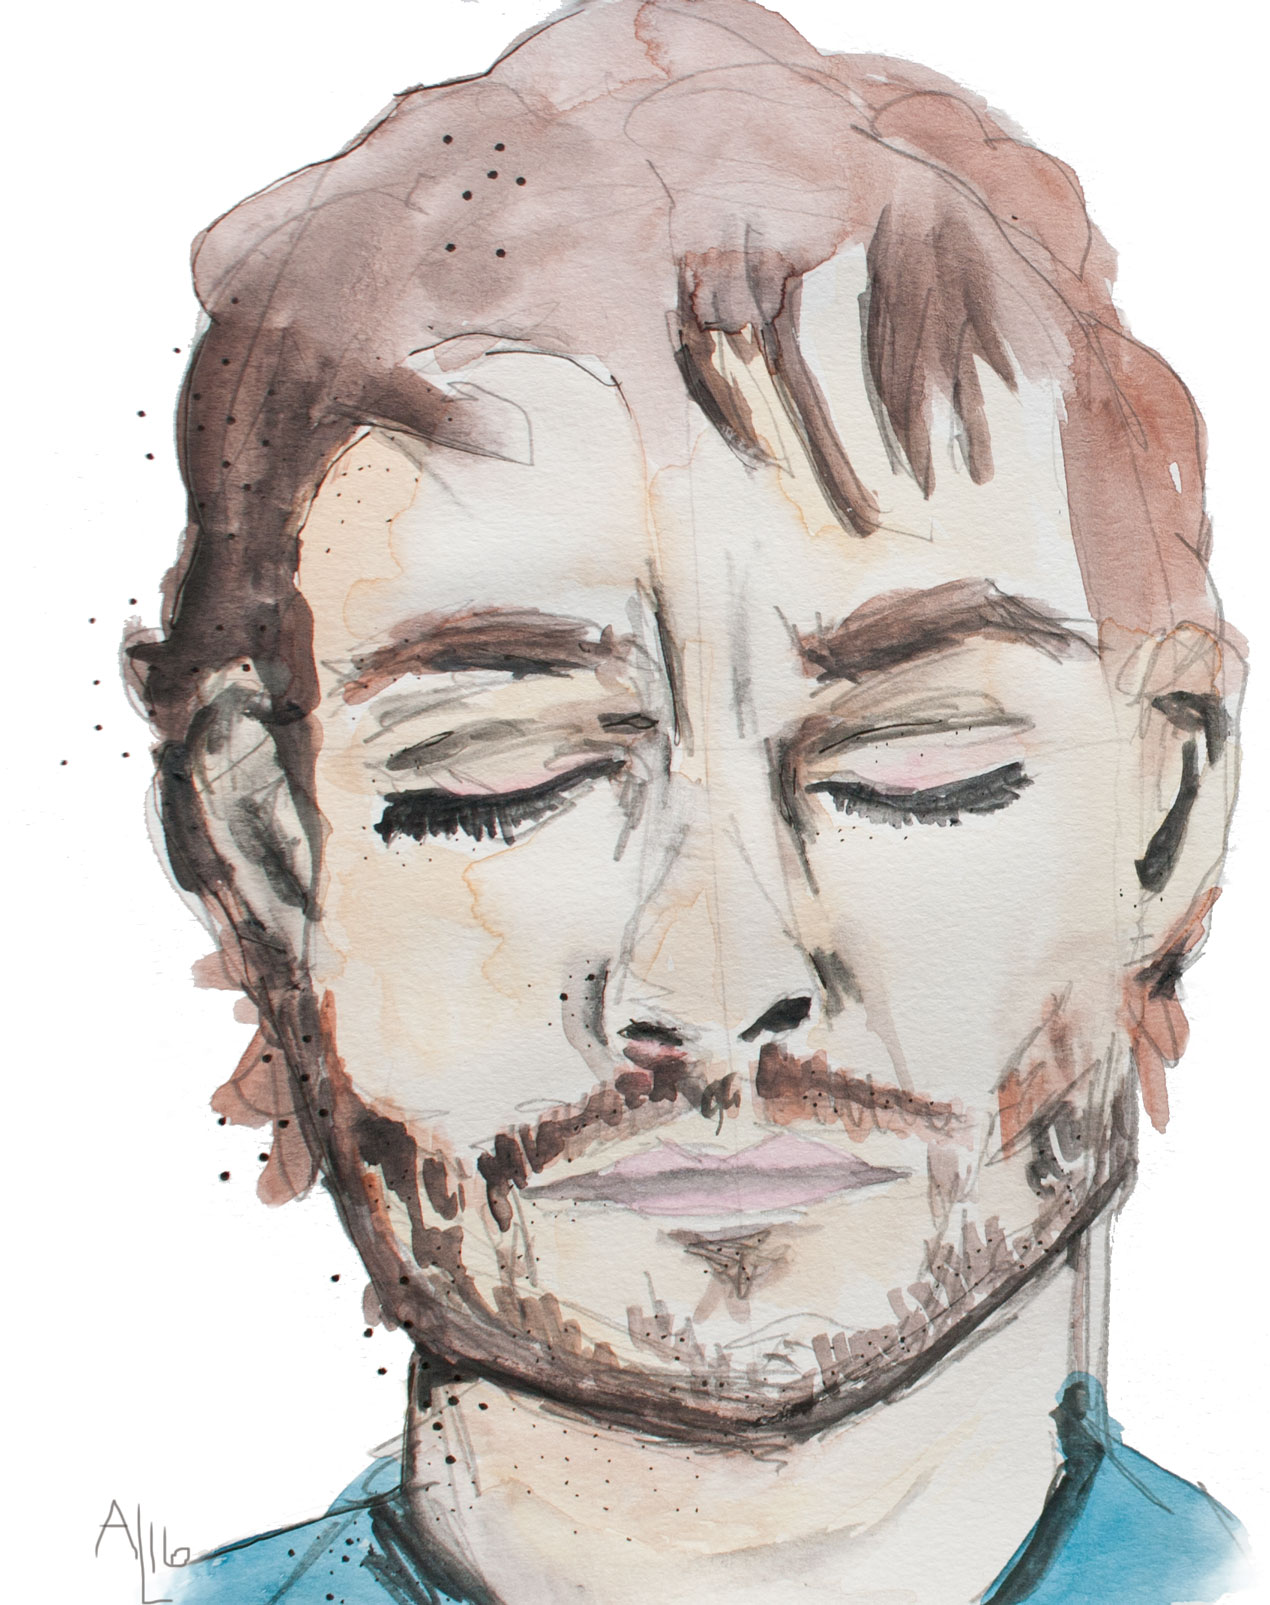 Hannibal's Will Graham in watercolor by artist Alex Landers |Read the full review on Hannibal and Jessica Jones atonecriticalbitch.com